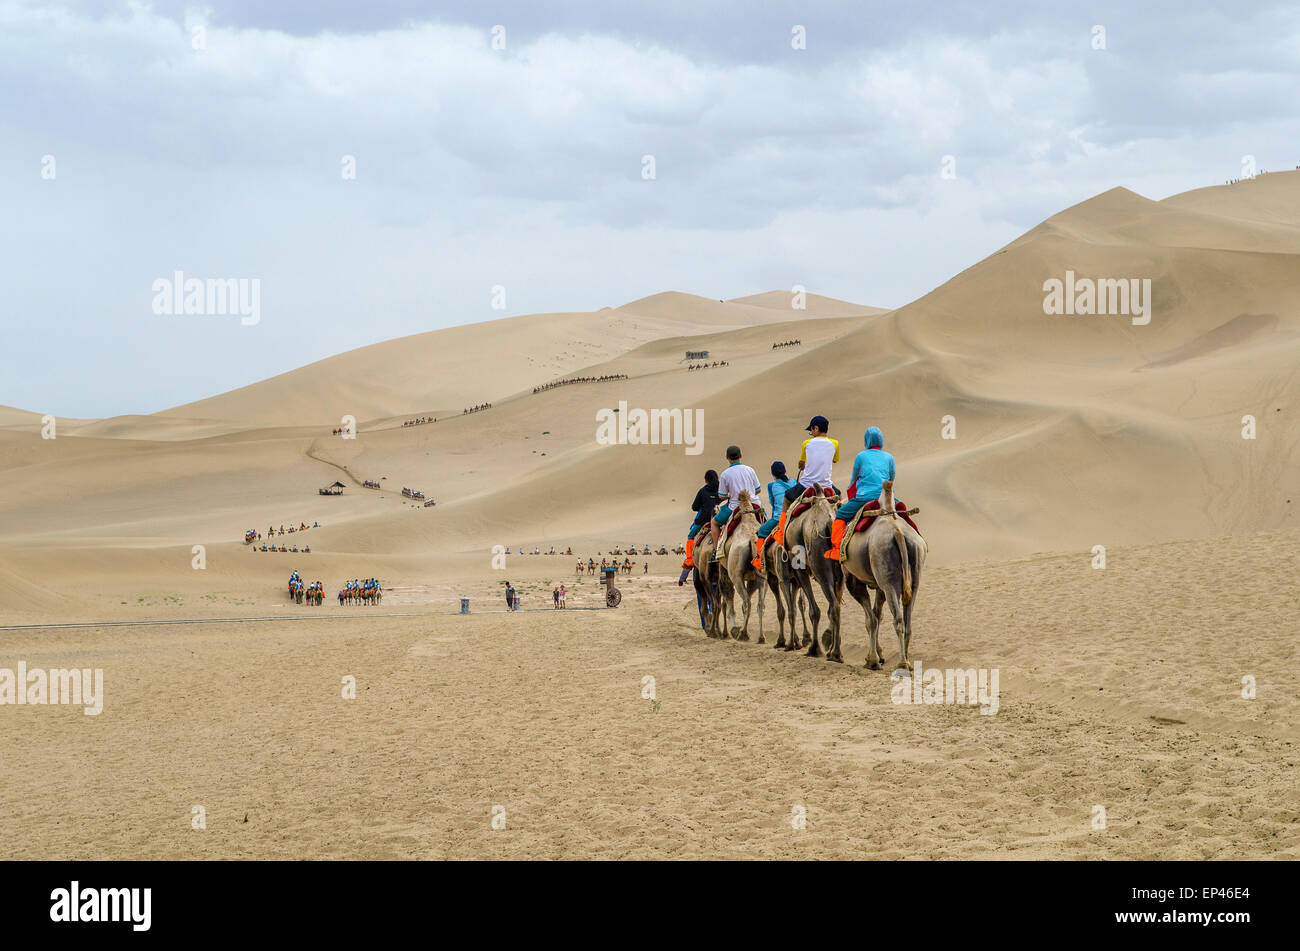 Sand dunes at Dunhuang, Gansu, China - Stock Image